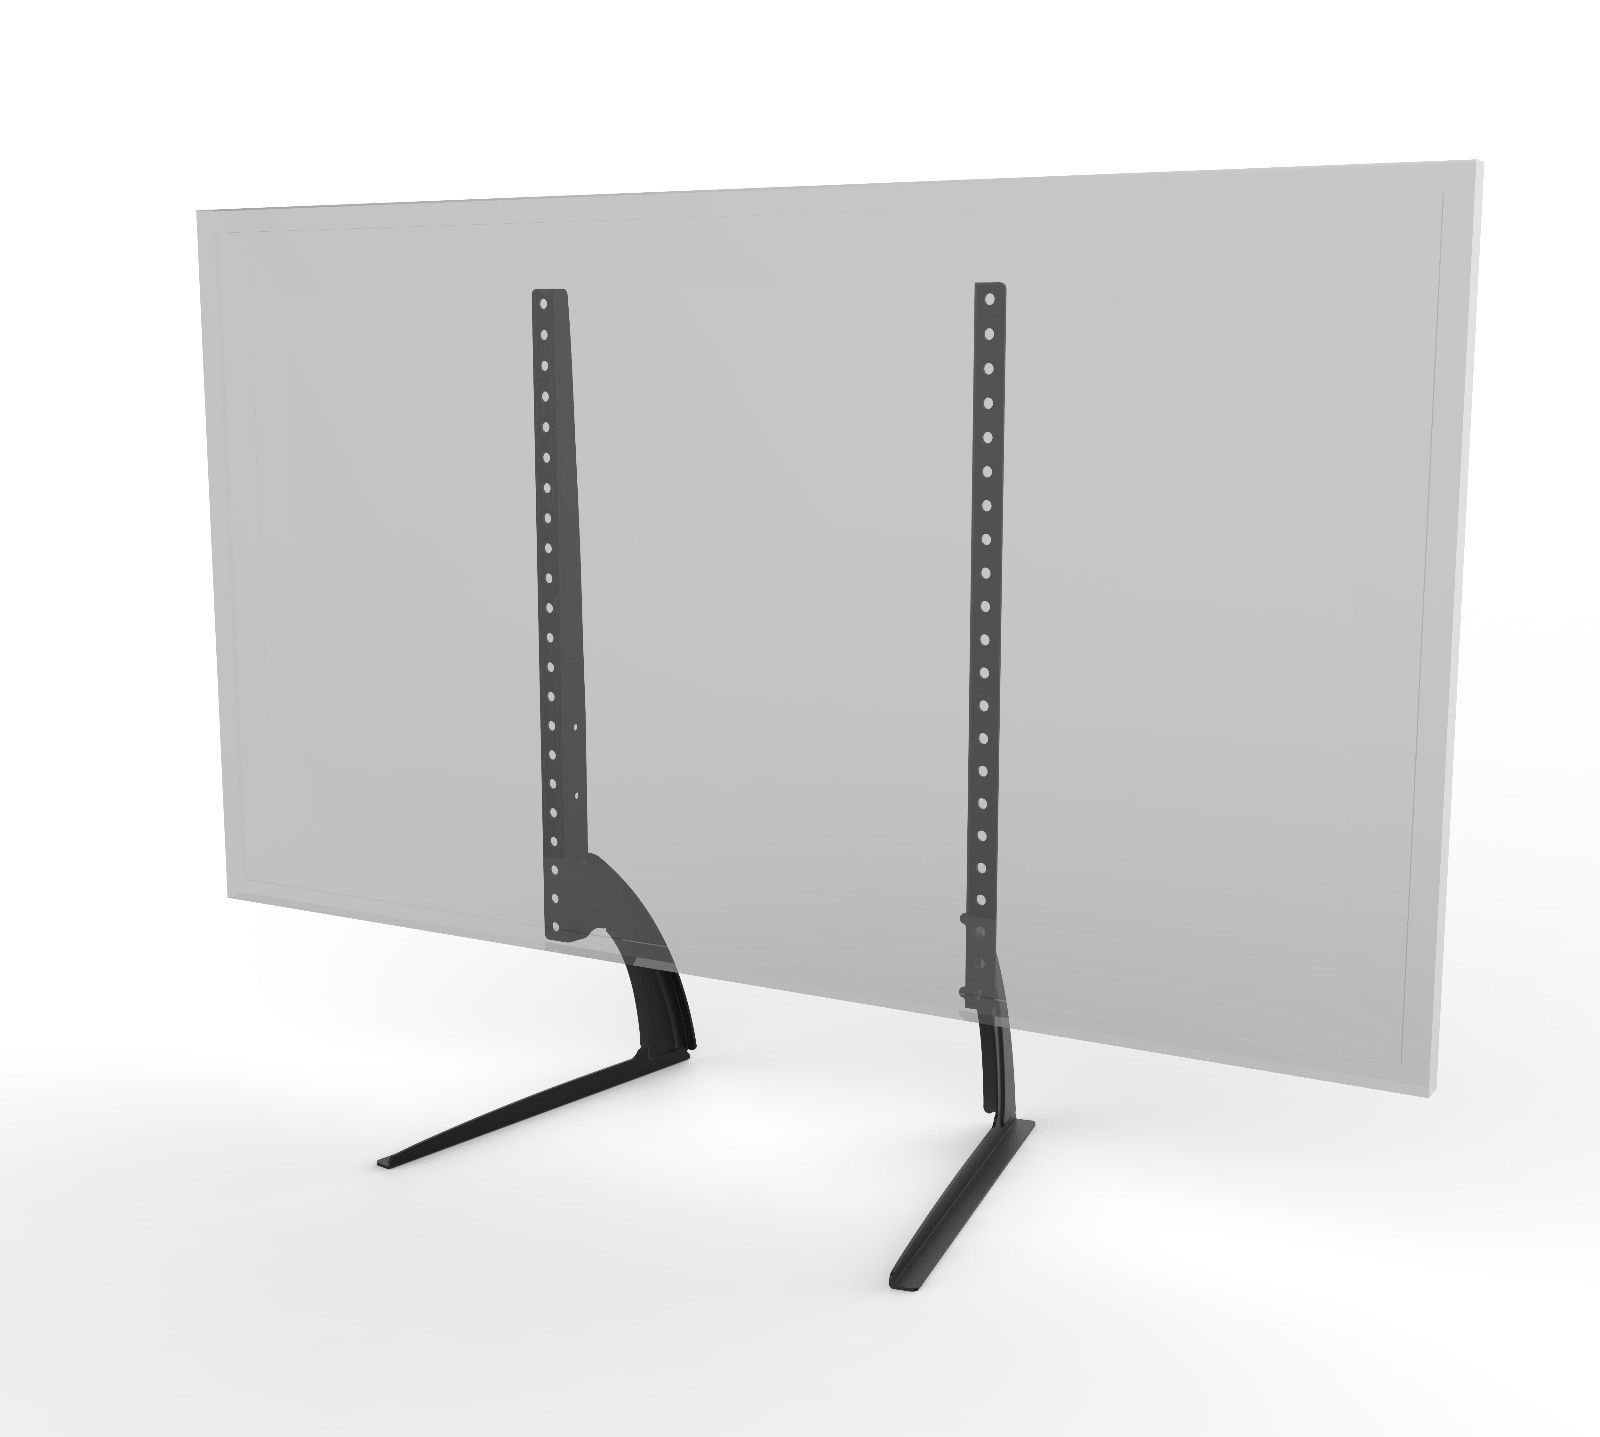 Universal Table Top TV Stand Legs for LG 42LB5800 Height Adjustable